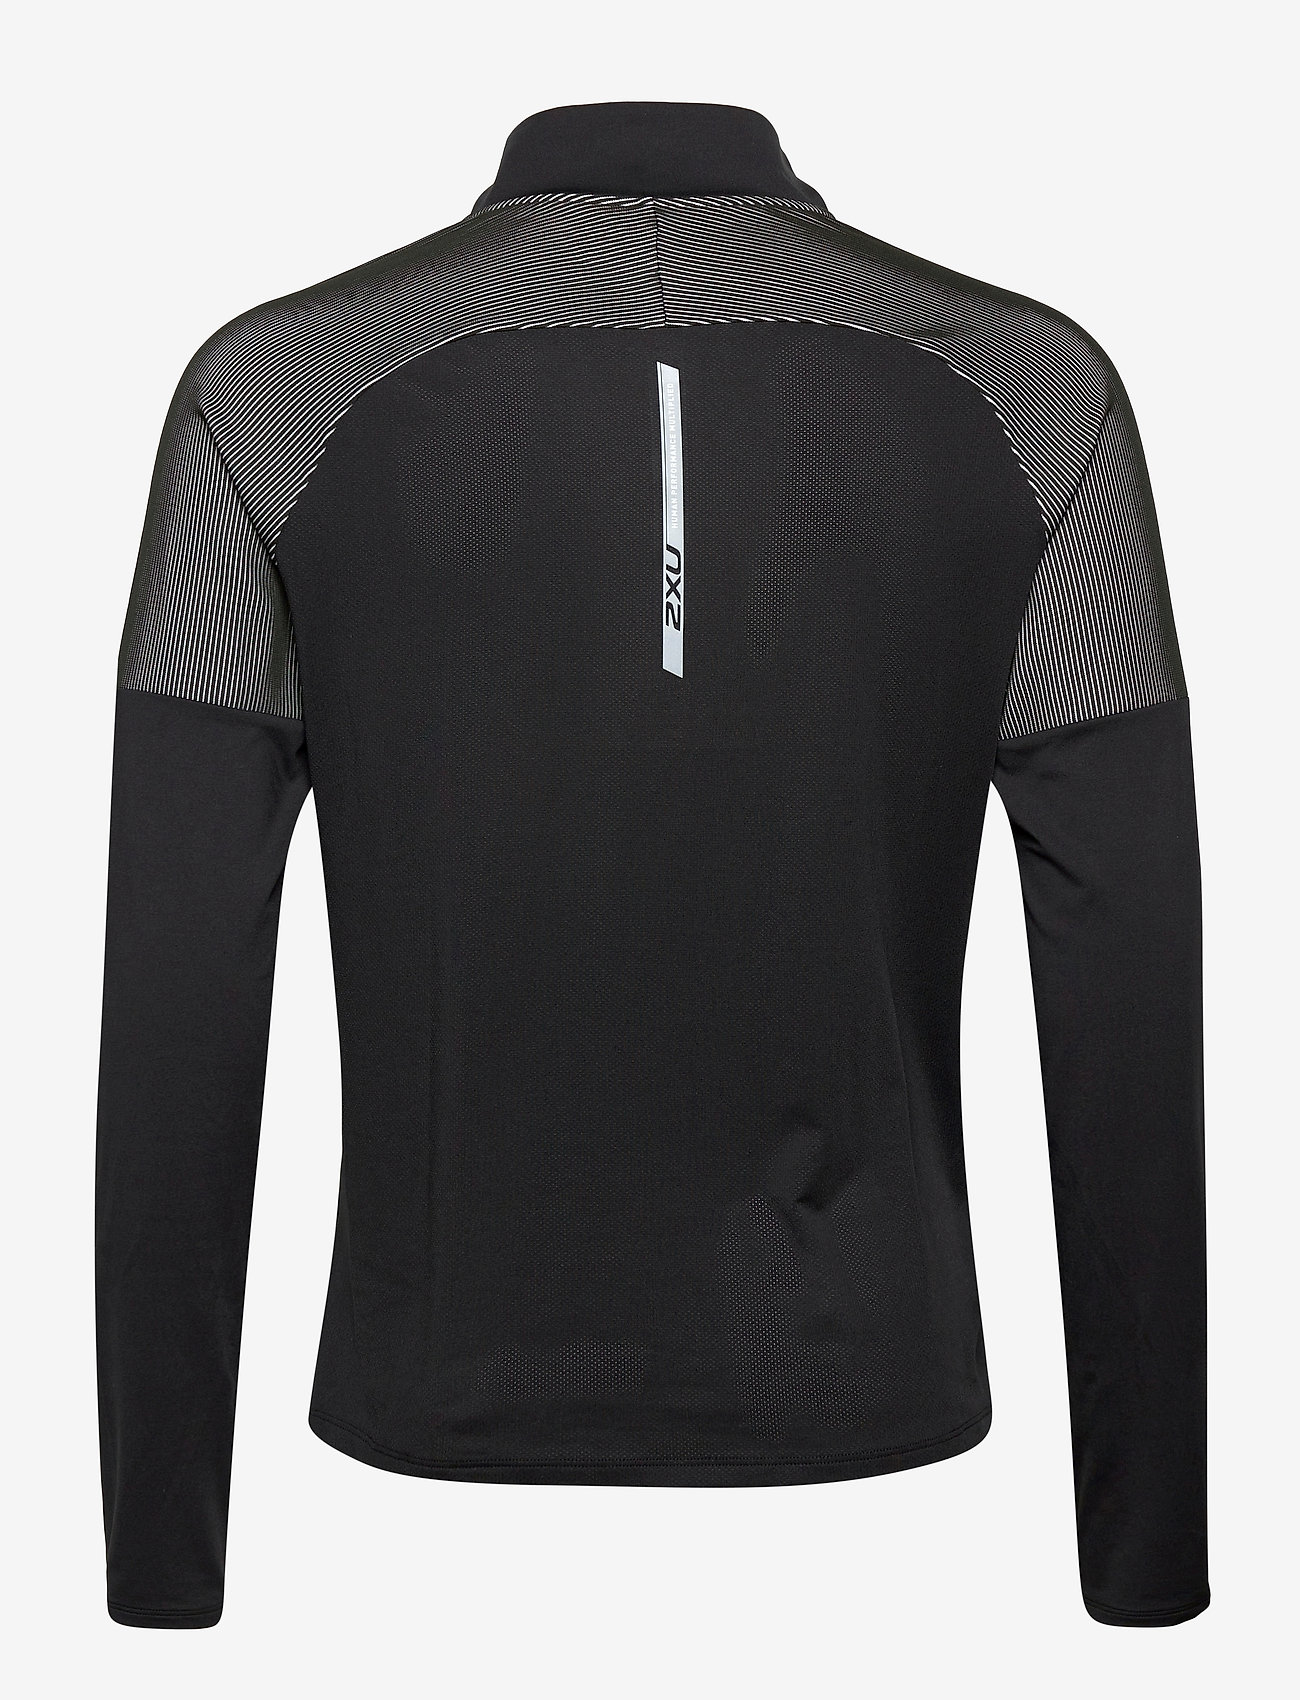 2XU - LIGHT SPEED 1/2 ZIP - langaermede-toppe - black/silver reflective - 1